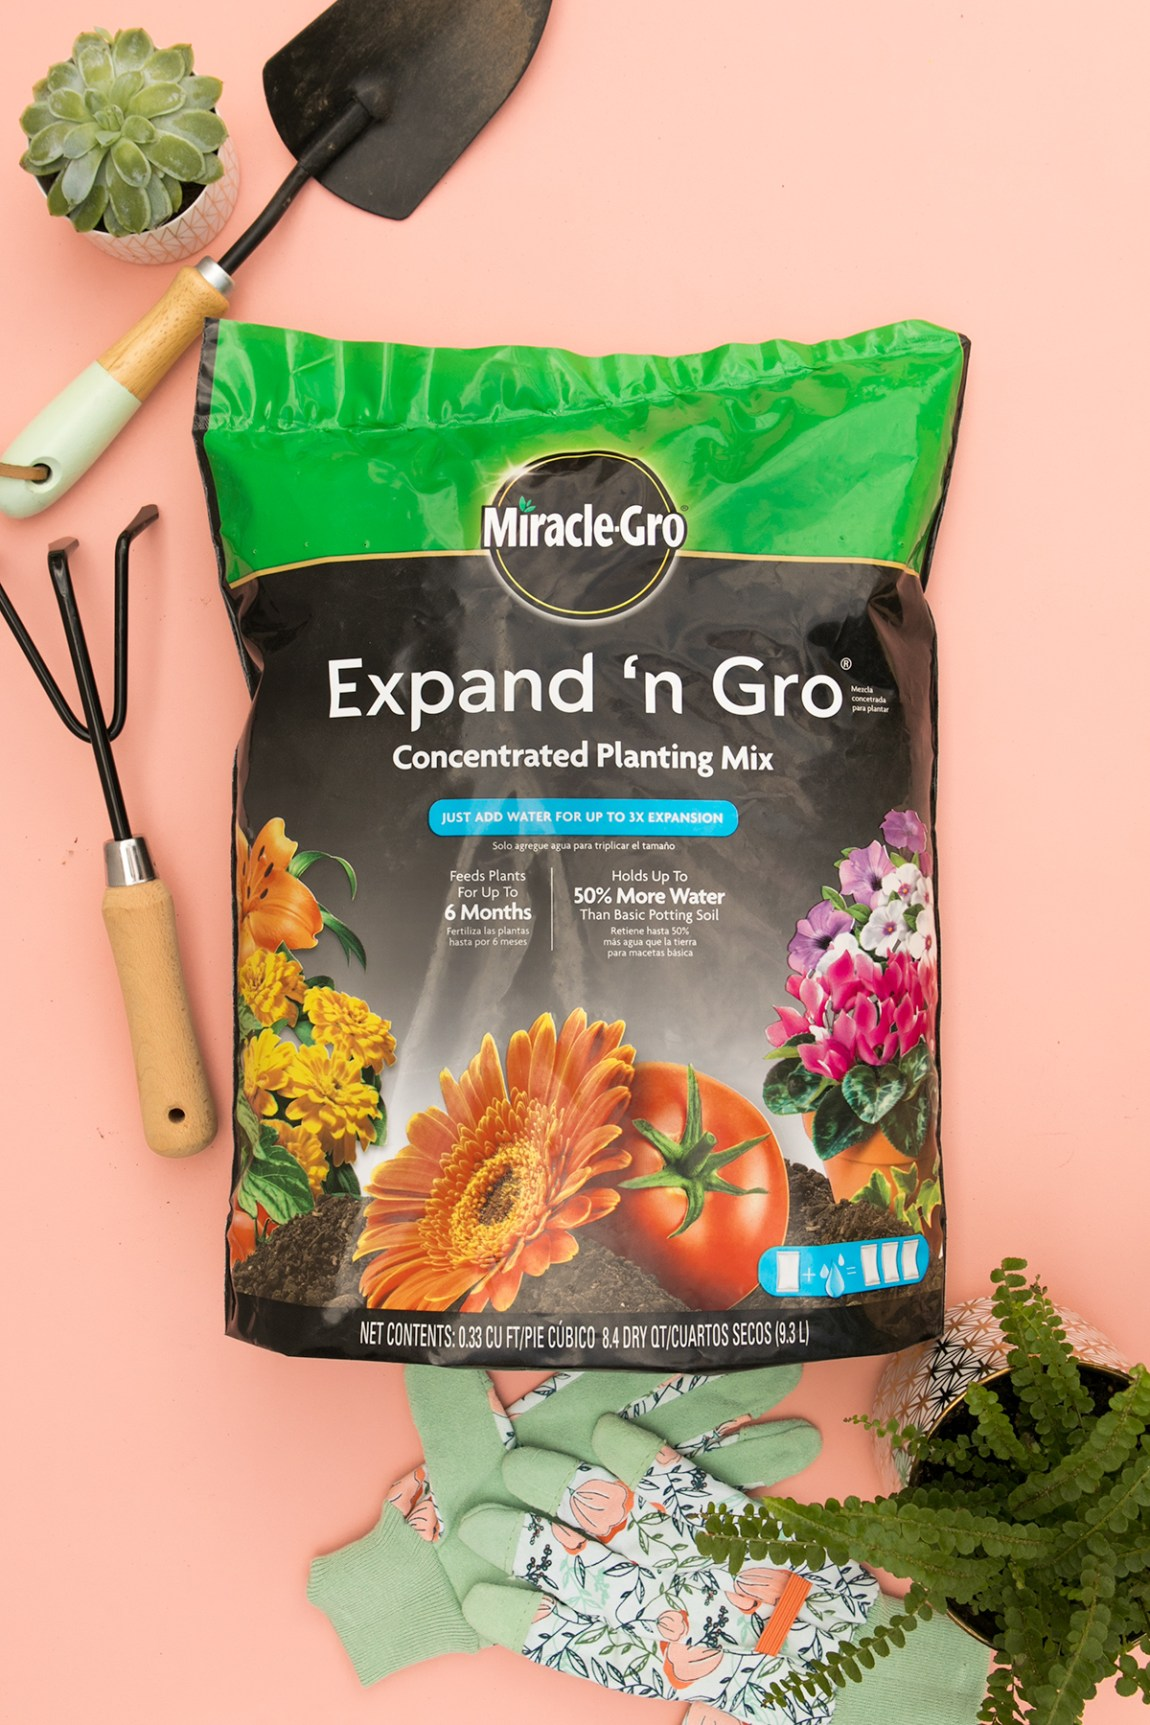 Miracle-Gro soil is now available on Amazon Prime. Just add water and it expands 3x in volume.